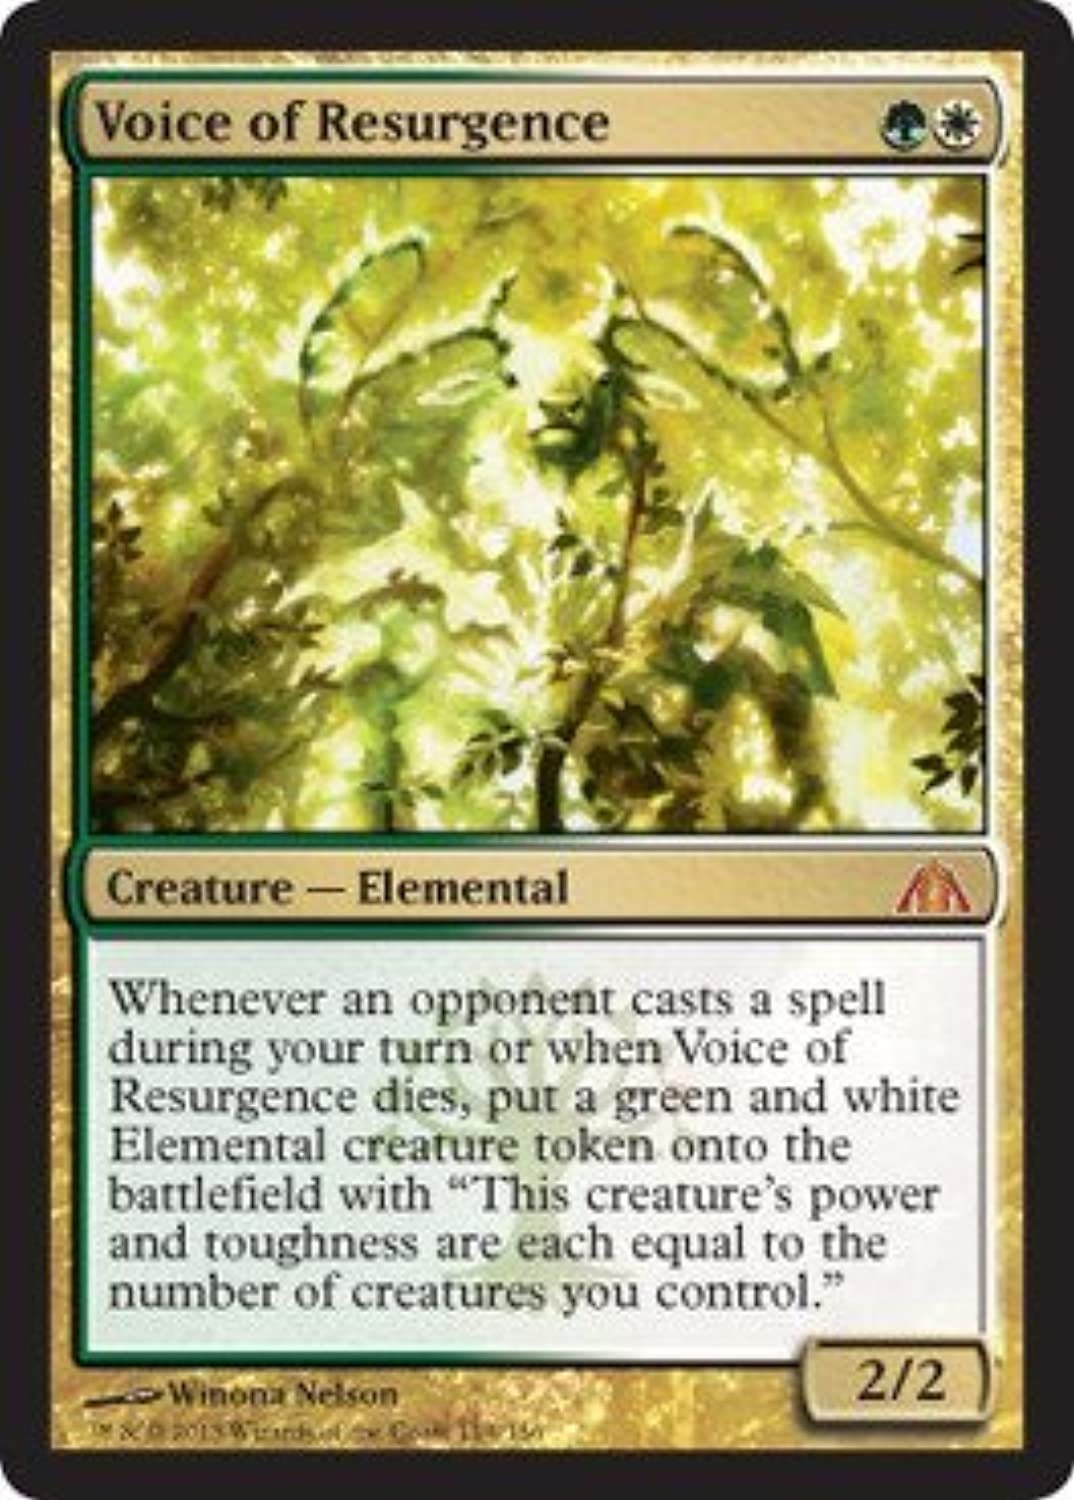 Magic  the Gathering  Voice of Resurgence  Dragon's Maze  Foil by Magic  the Gathering